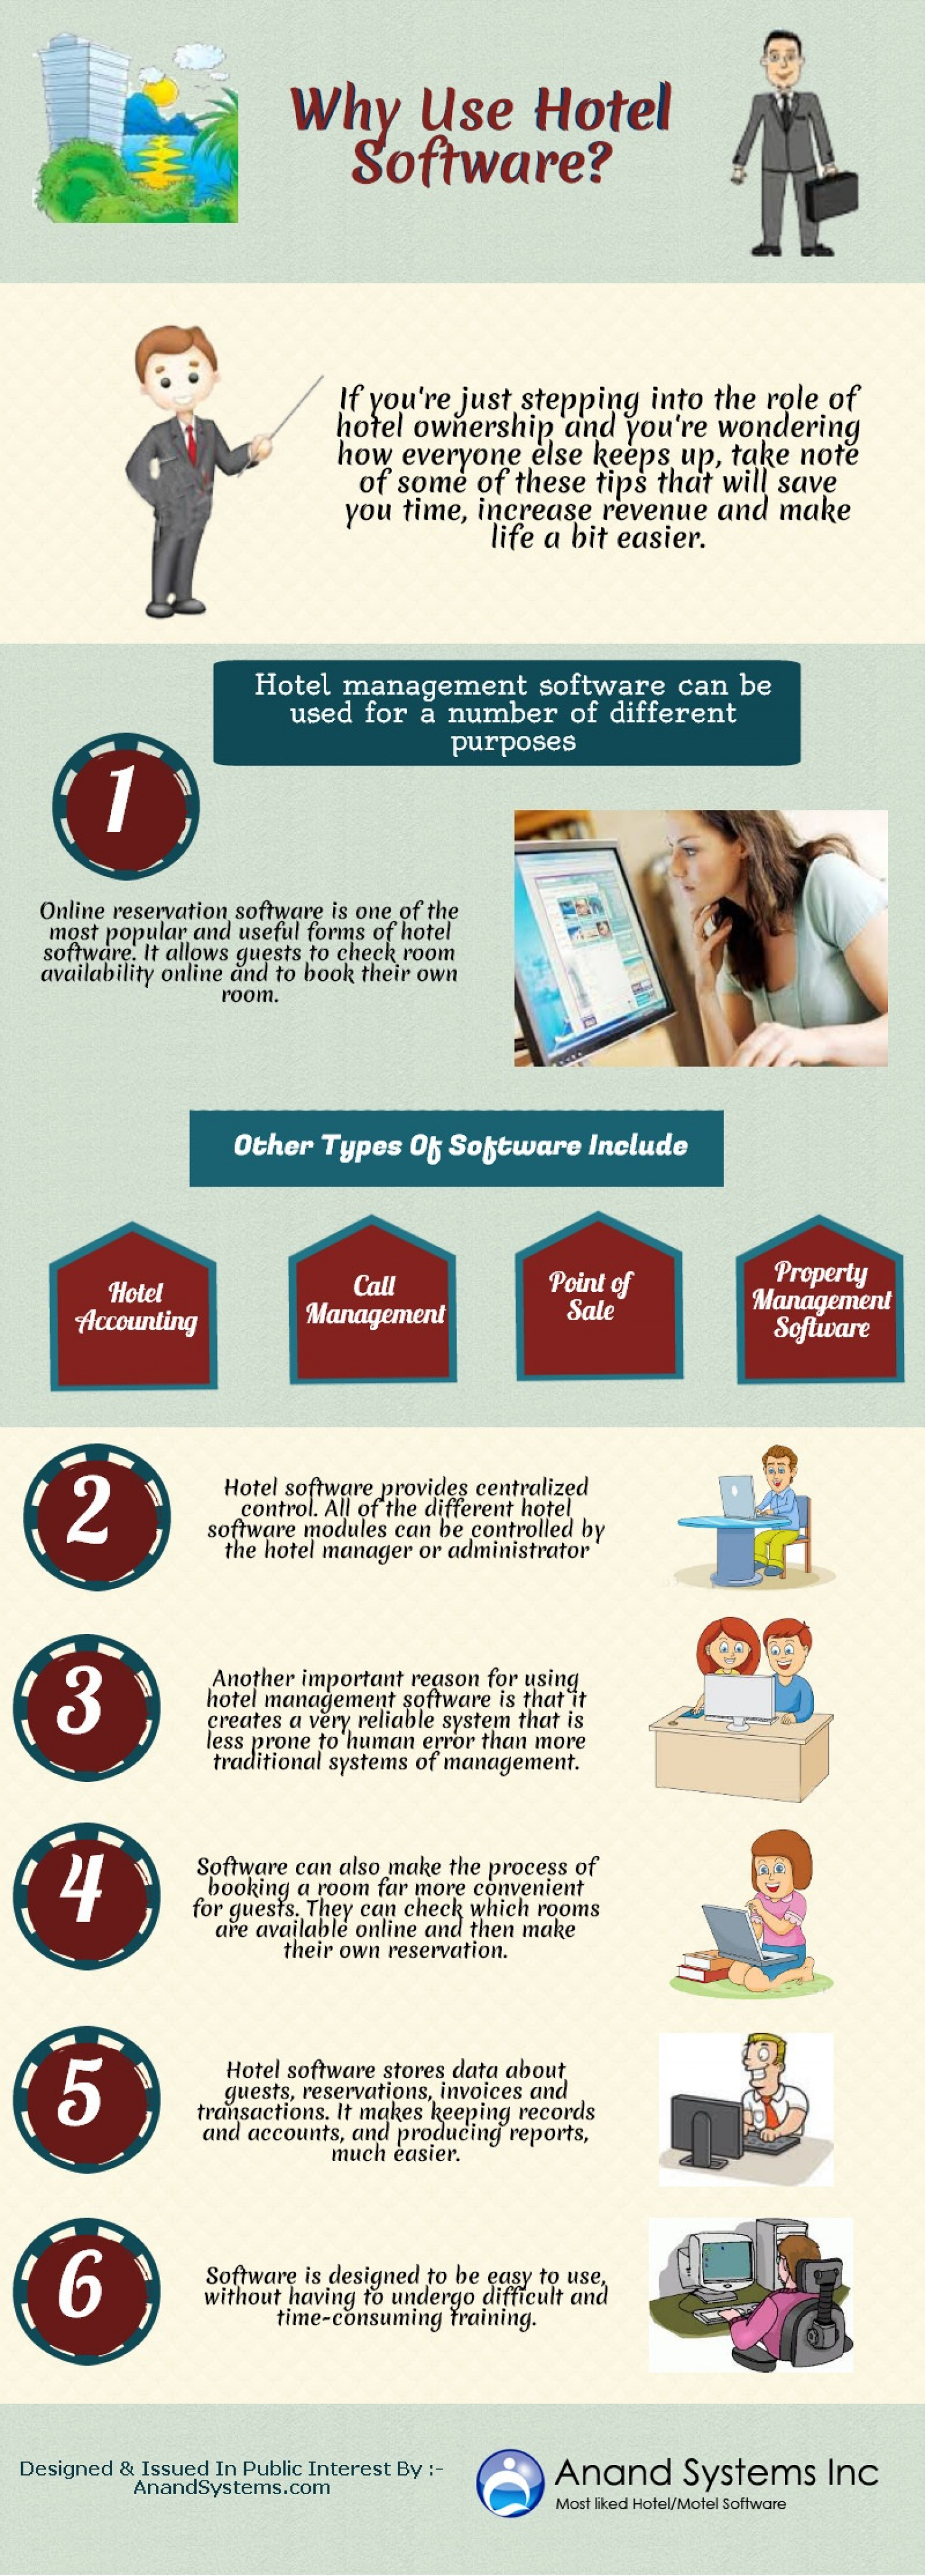 Why Use Hotel Software? Infographic